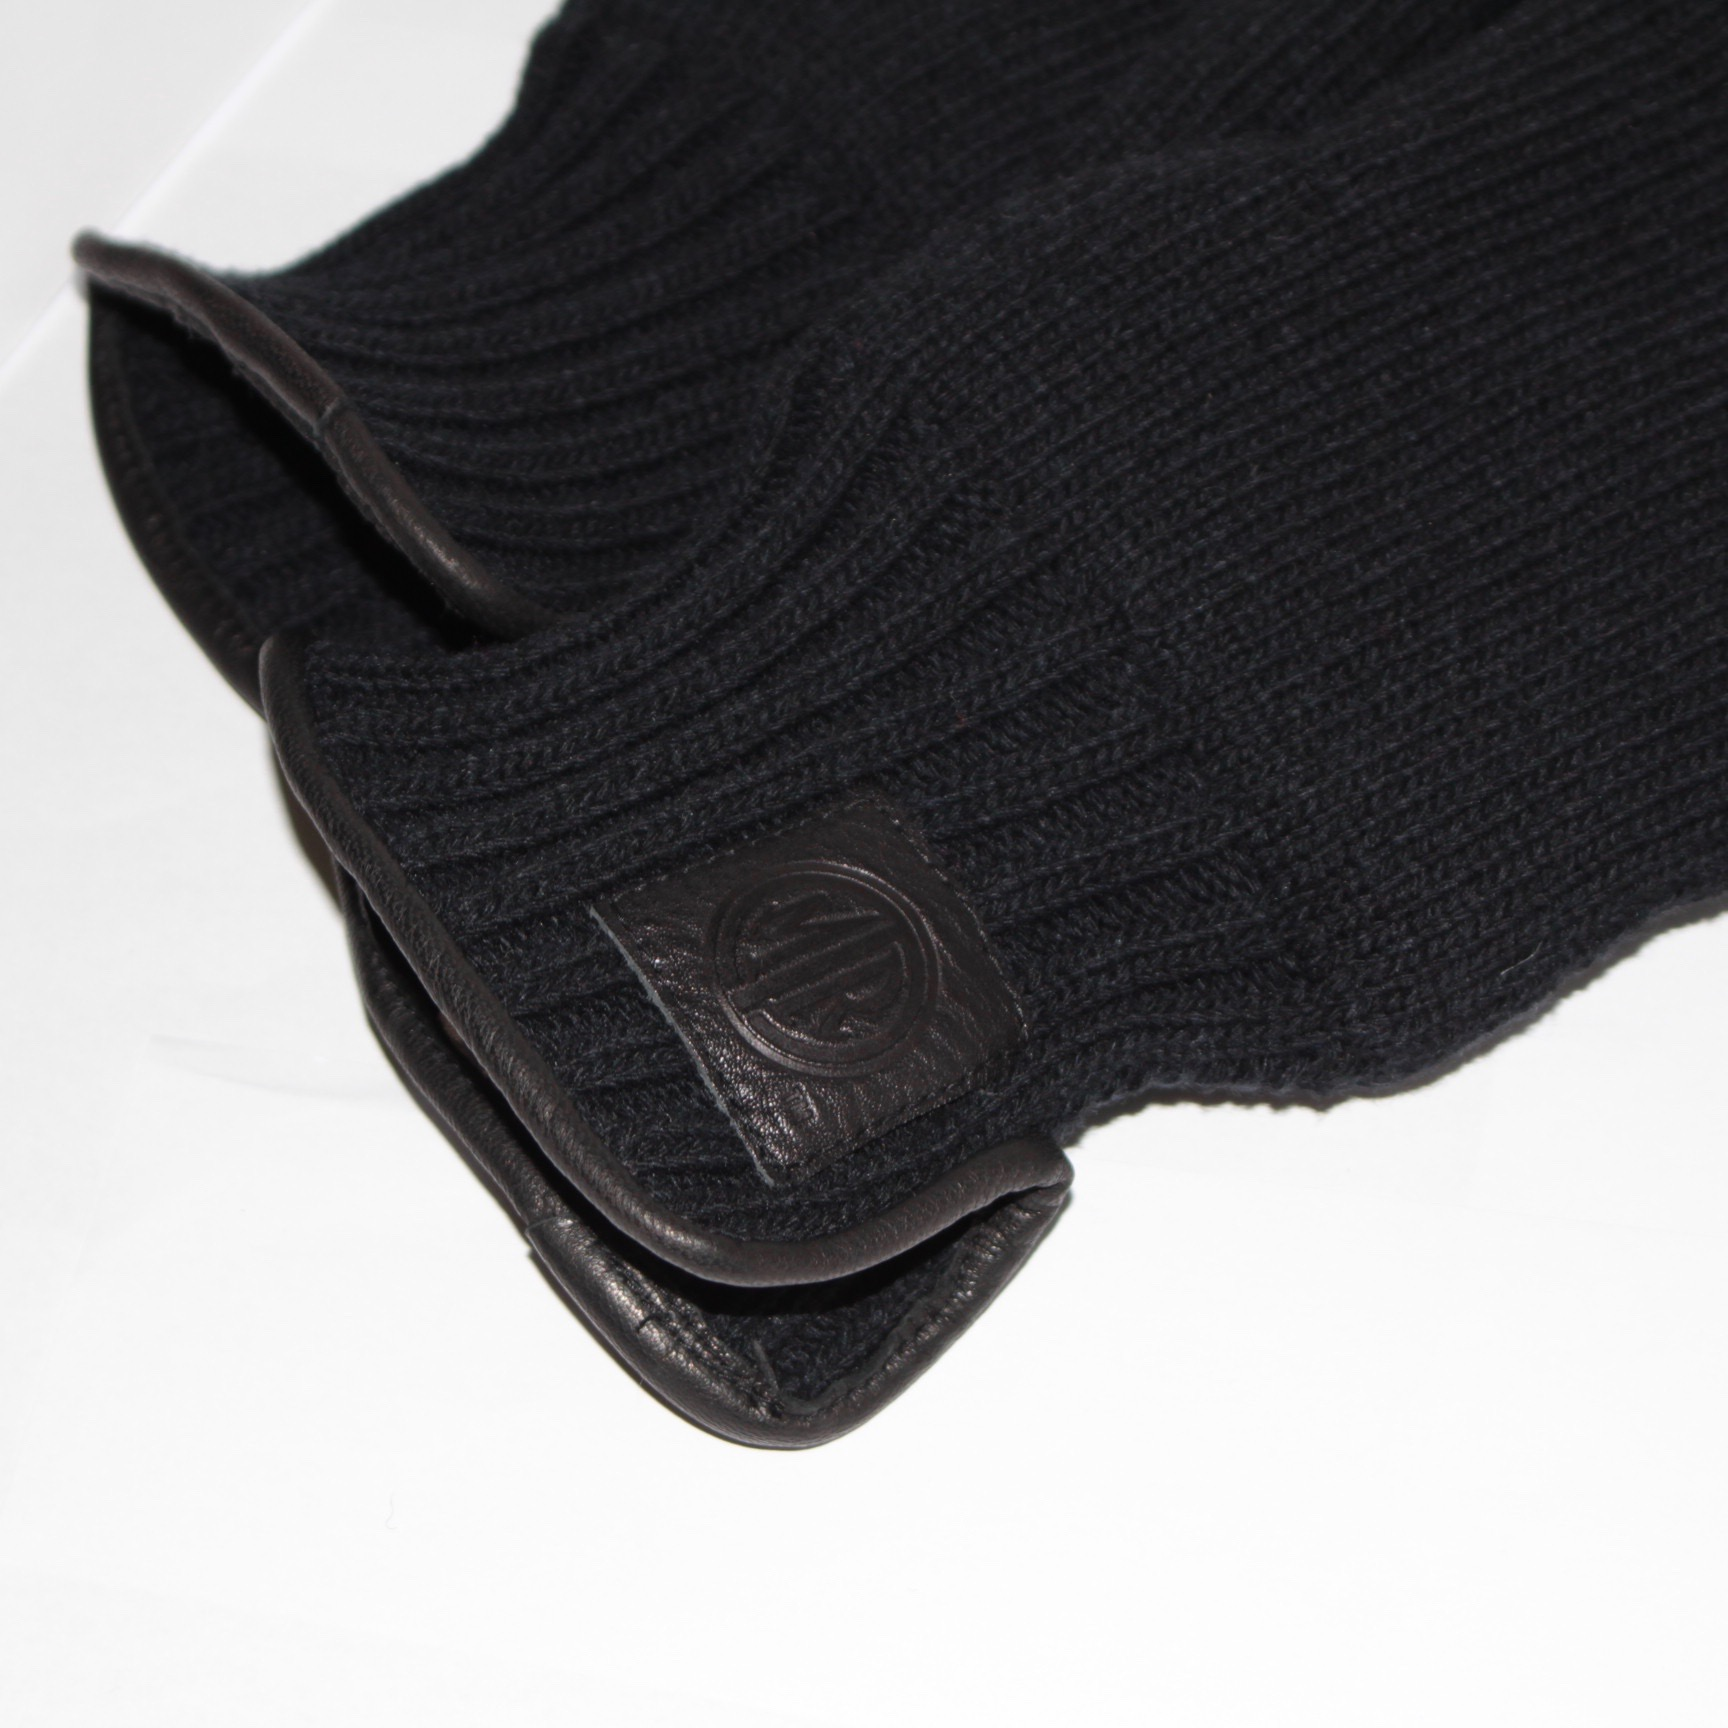 MOUT RECON TAILOR(マウト リーコン テイラー)|Knit Gloves(ニットグローブ)